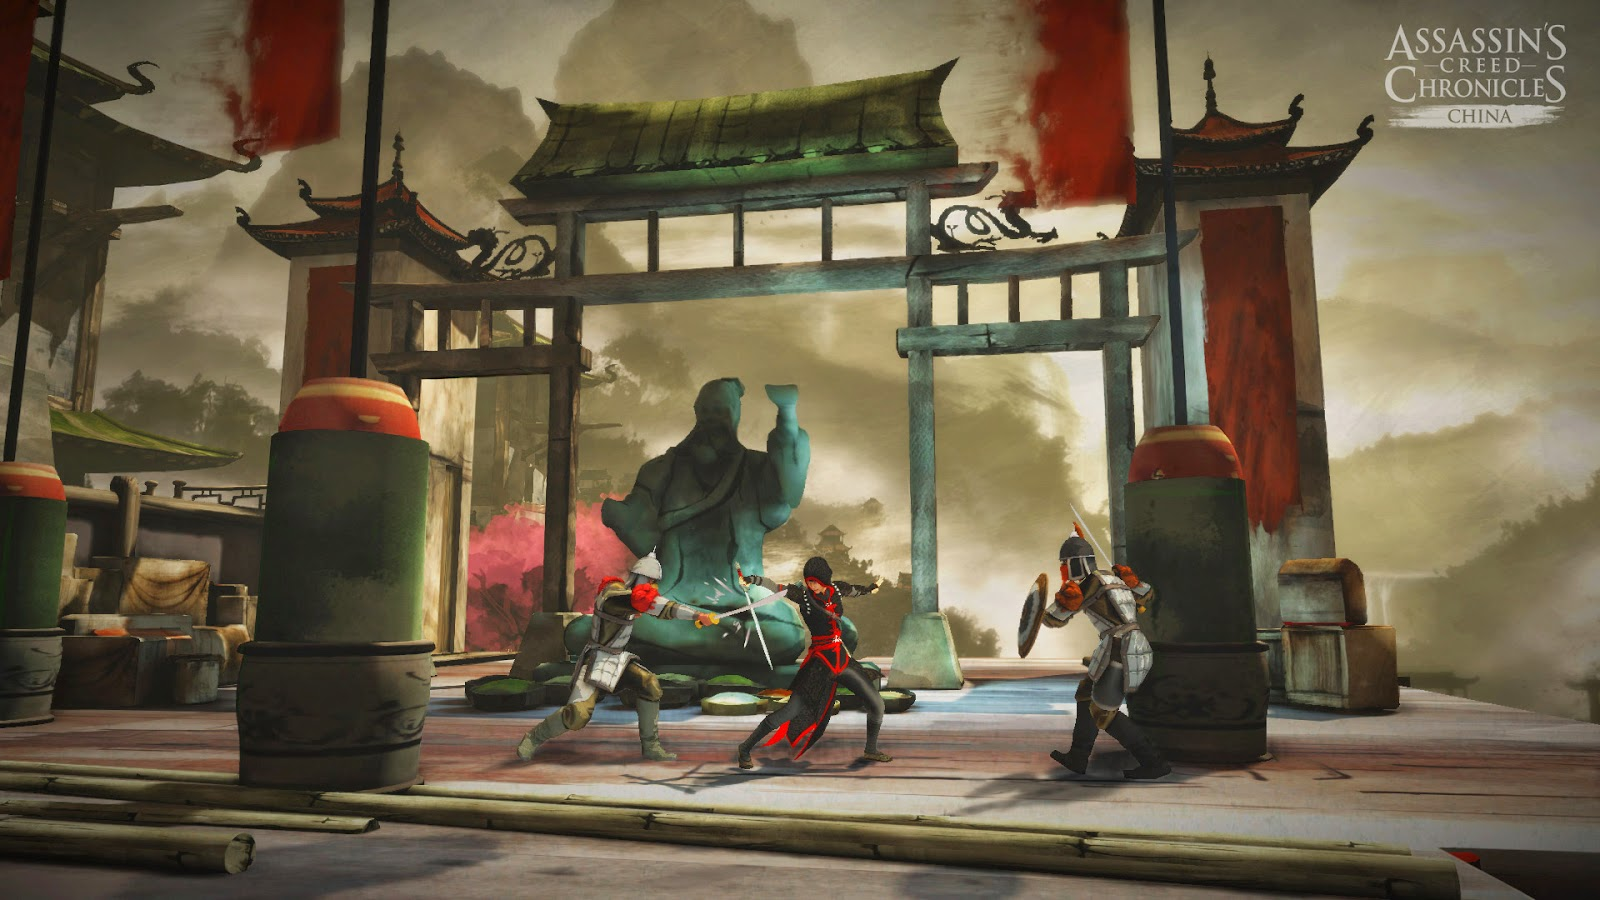 Assassin's Creed Chronicles China 2015 Fully Full Version PC